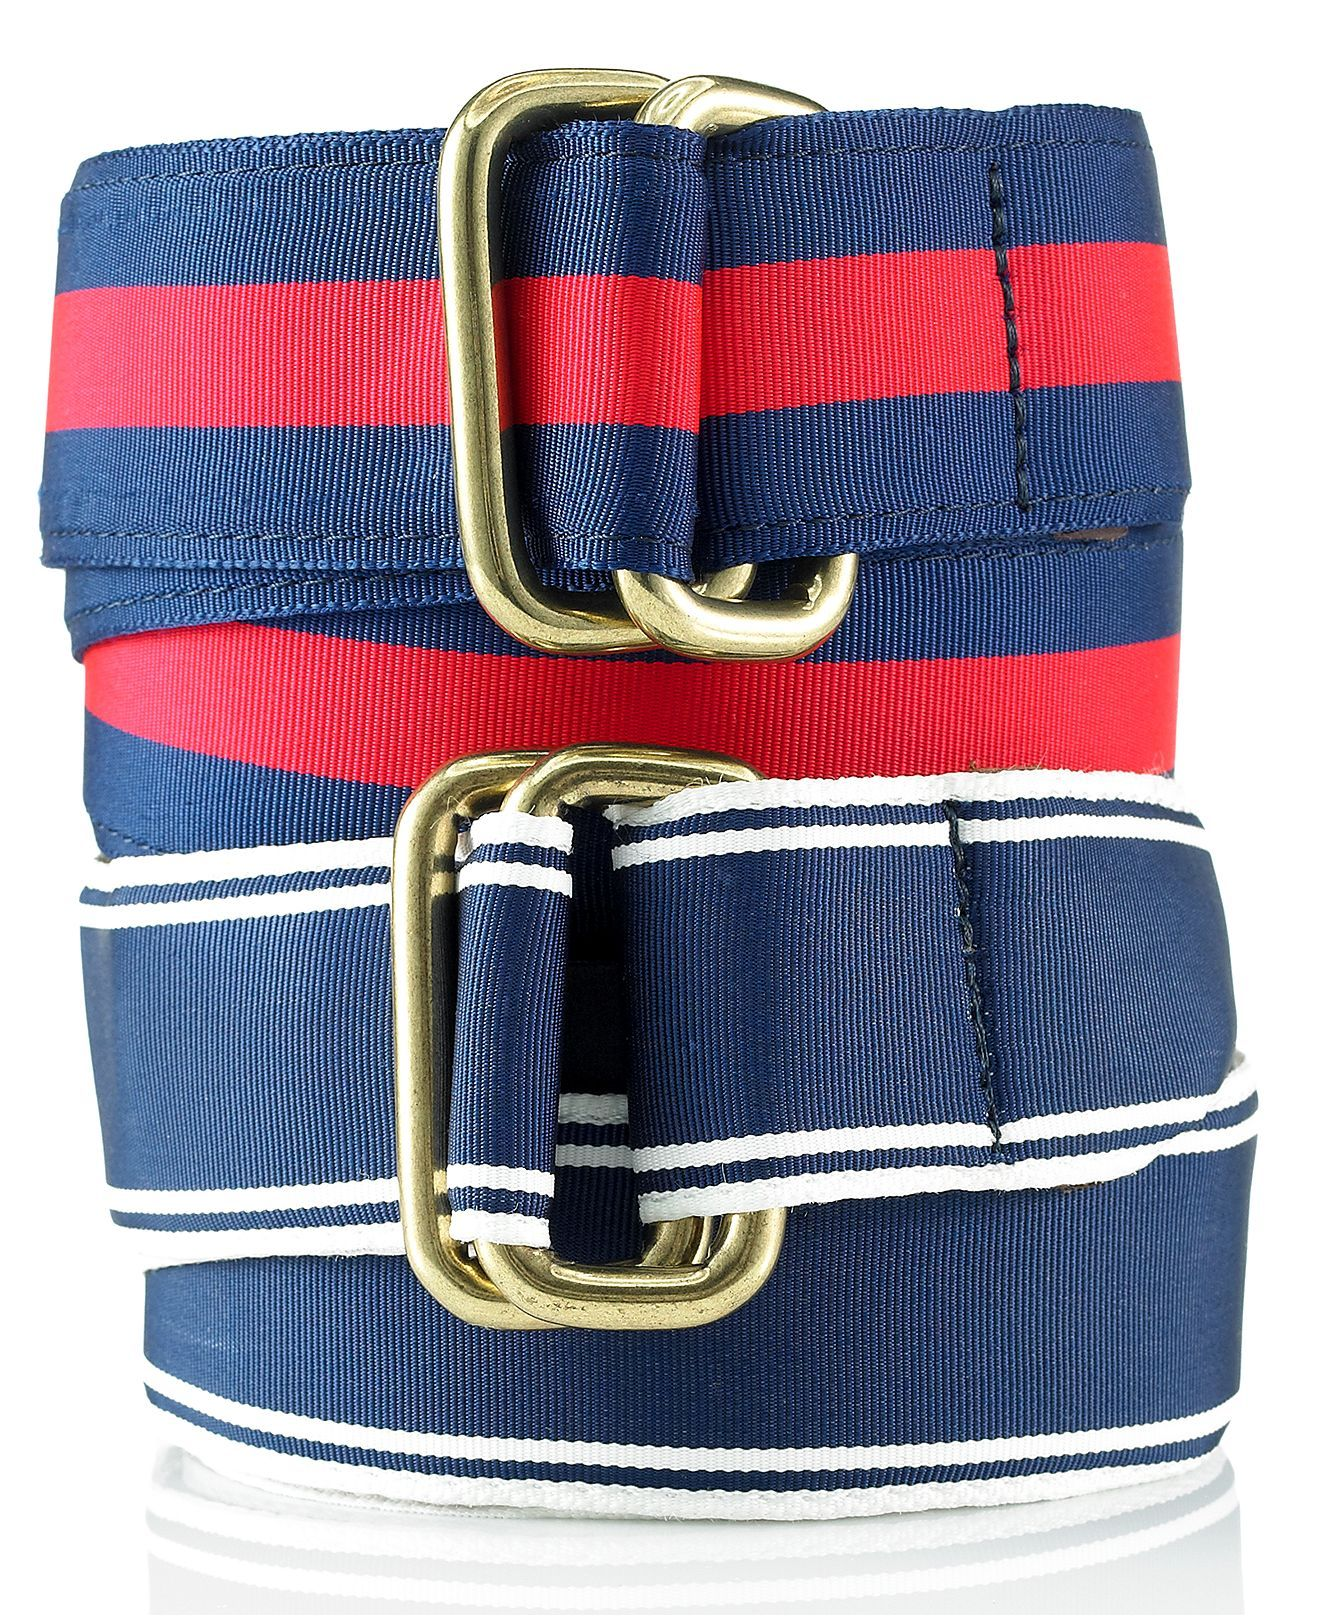 Tommy Hilfiger Belt Stitched Double D Ring Tommy Hilfiger Belt